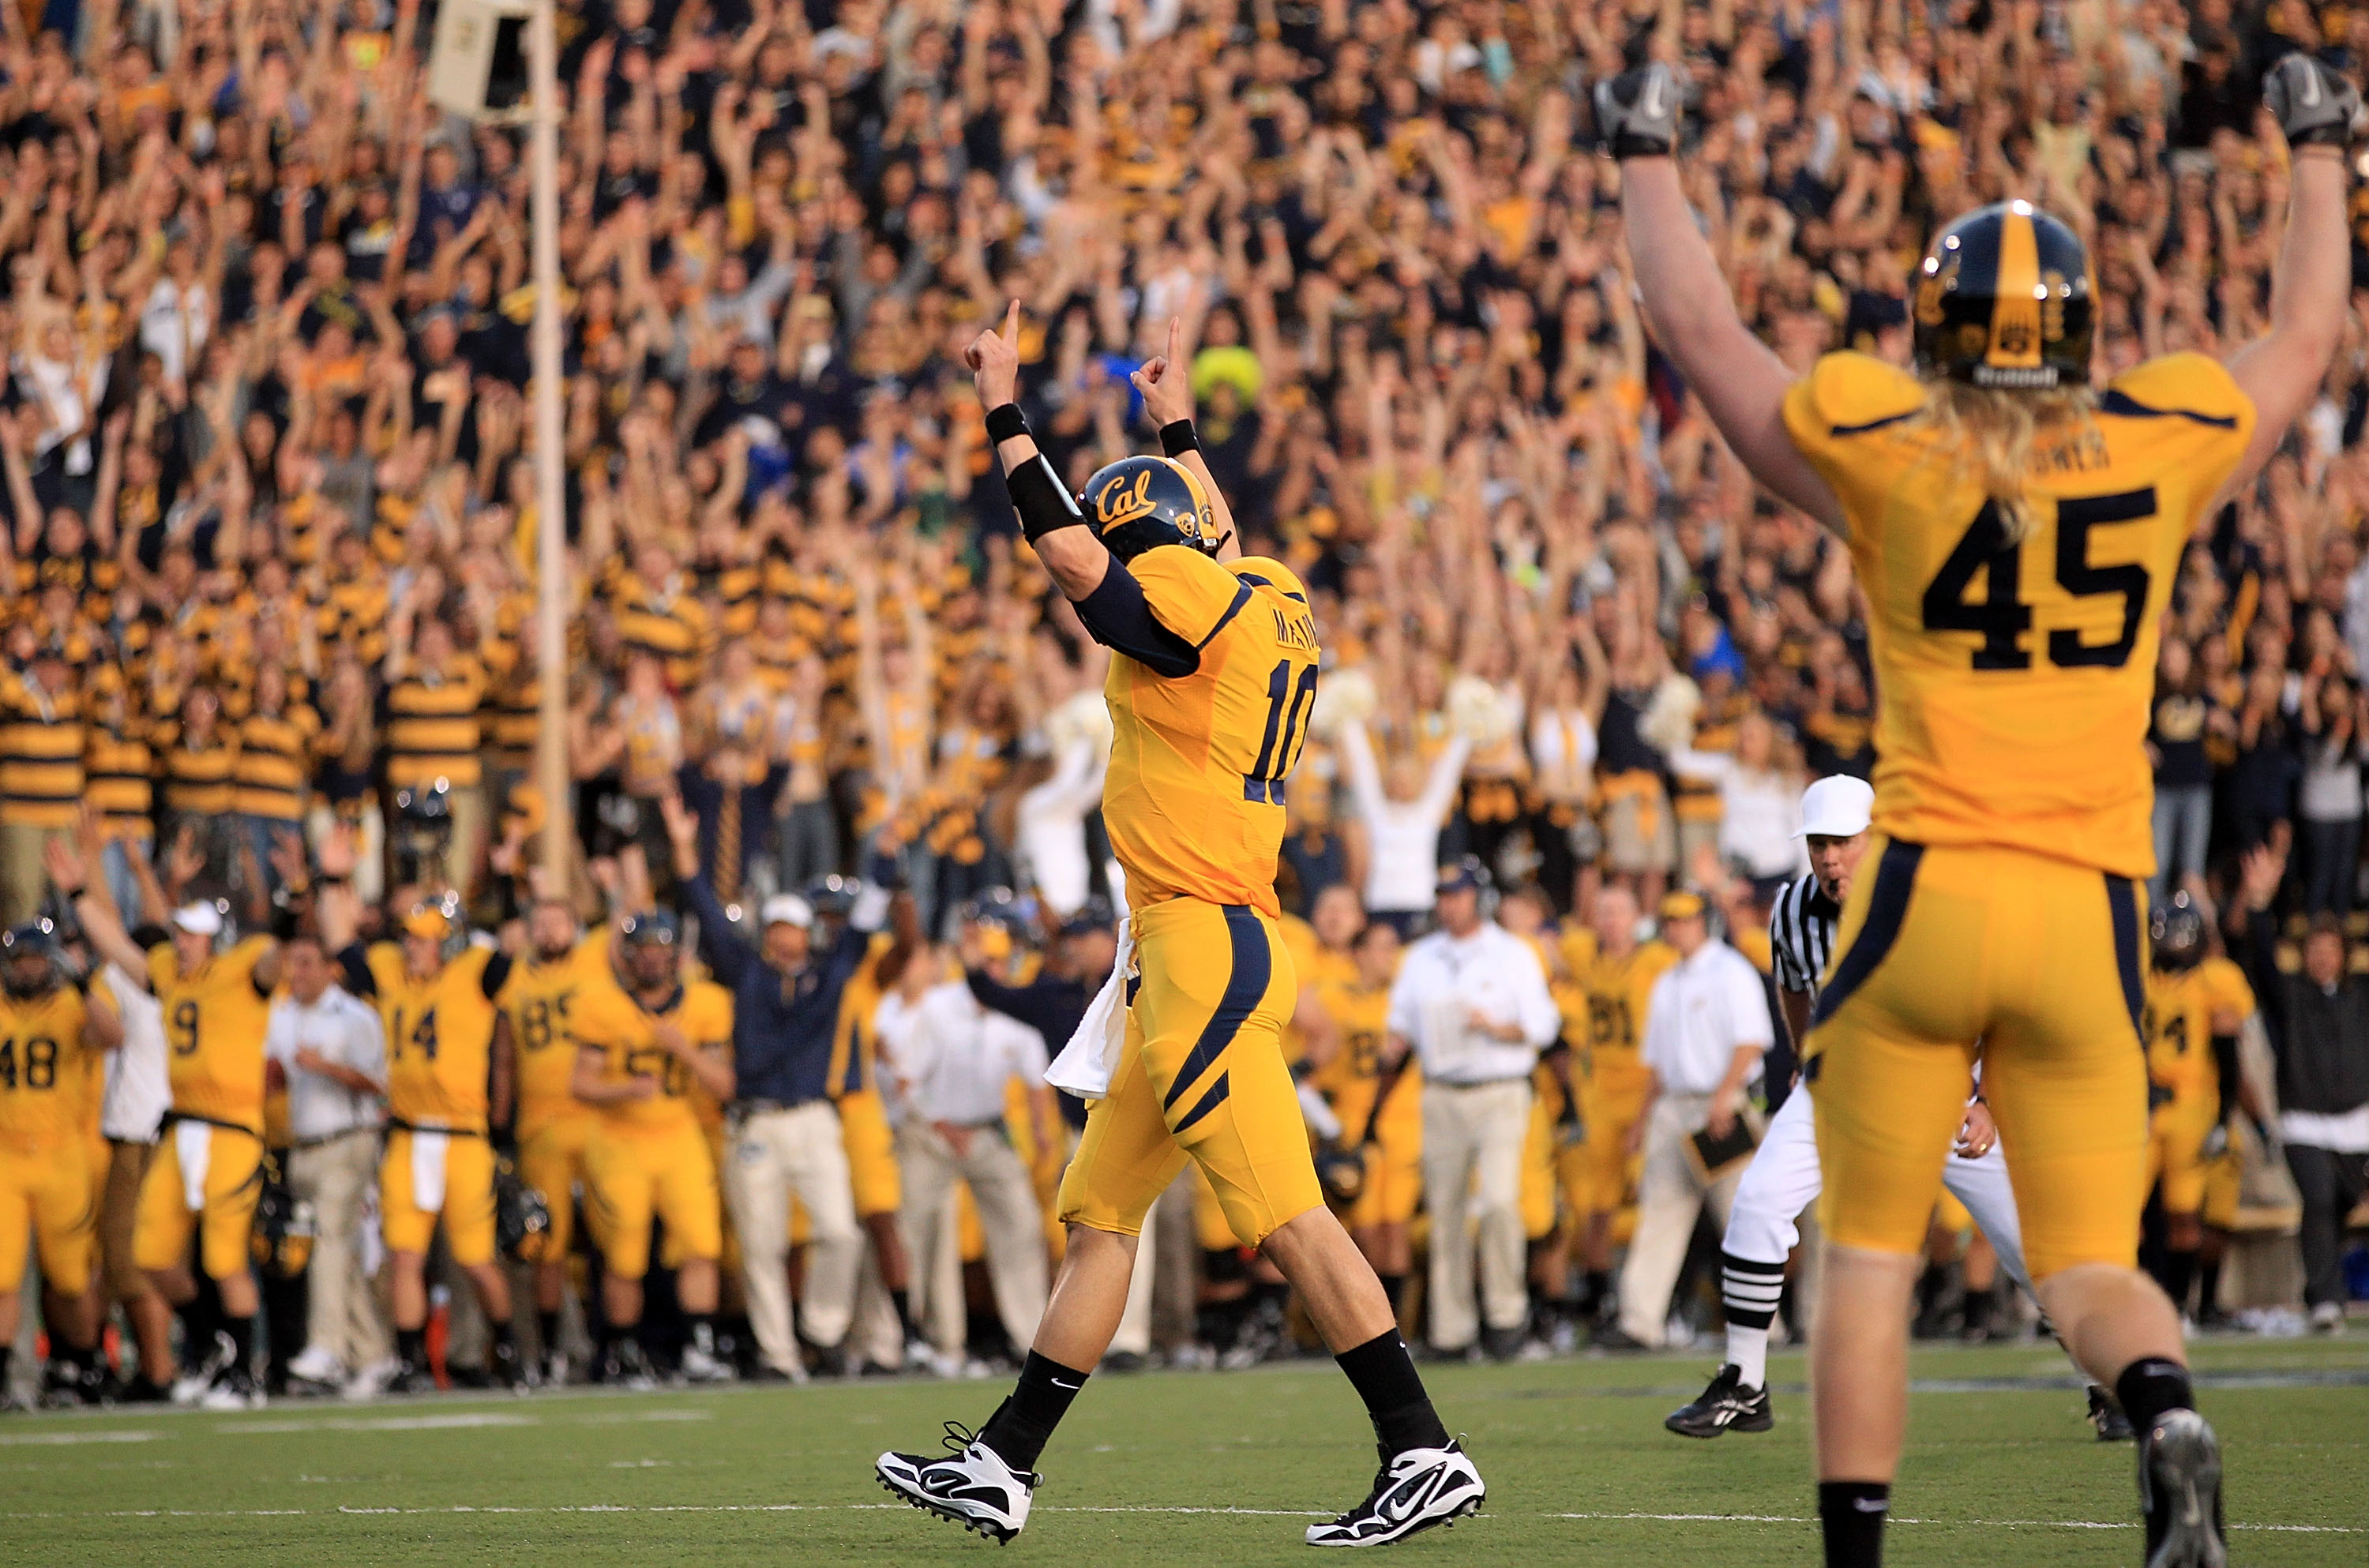 BERKELEY, CA - NOVEMBER 13:  Brock Mansion #10 and Spencer Ladner #45 of the California Golden Bears celebrate after they scored a touchdown against the Oregon Ducks at California Memorial Stadium on November 13, 2010 in Berkeley, California.  (Photo by E